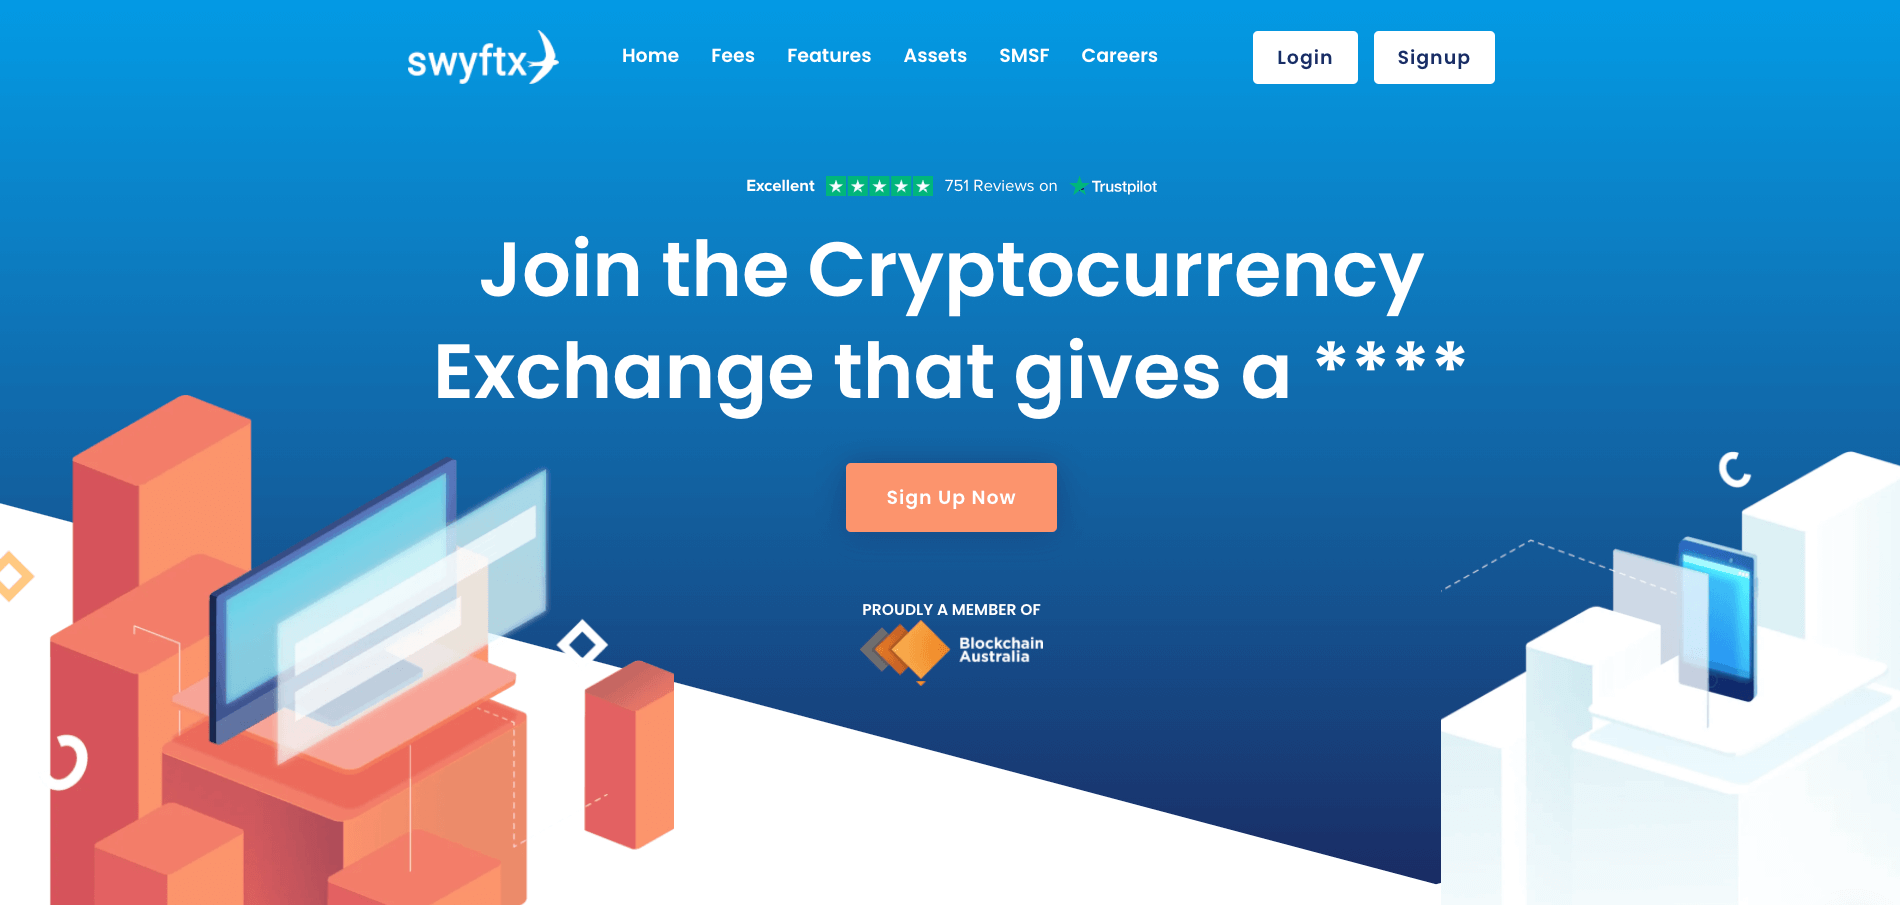 swyftx crypto exchange, crypto exchanges australia